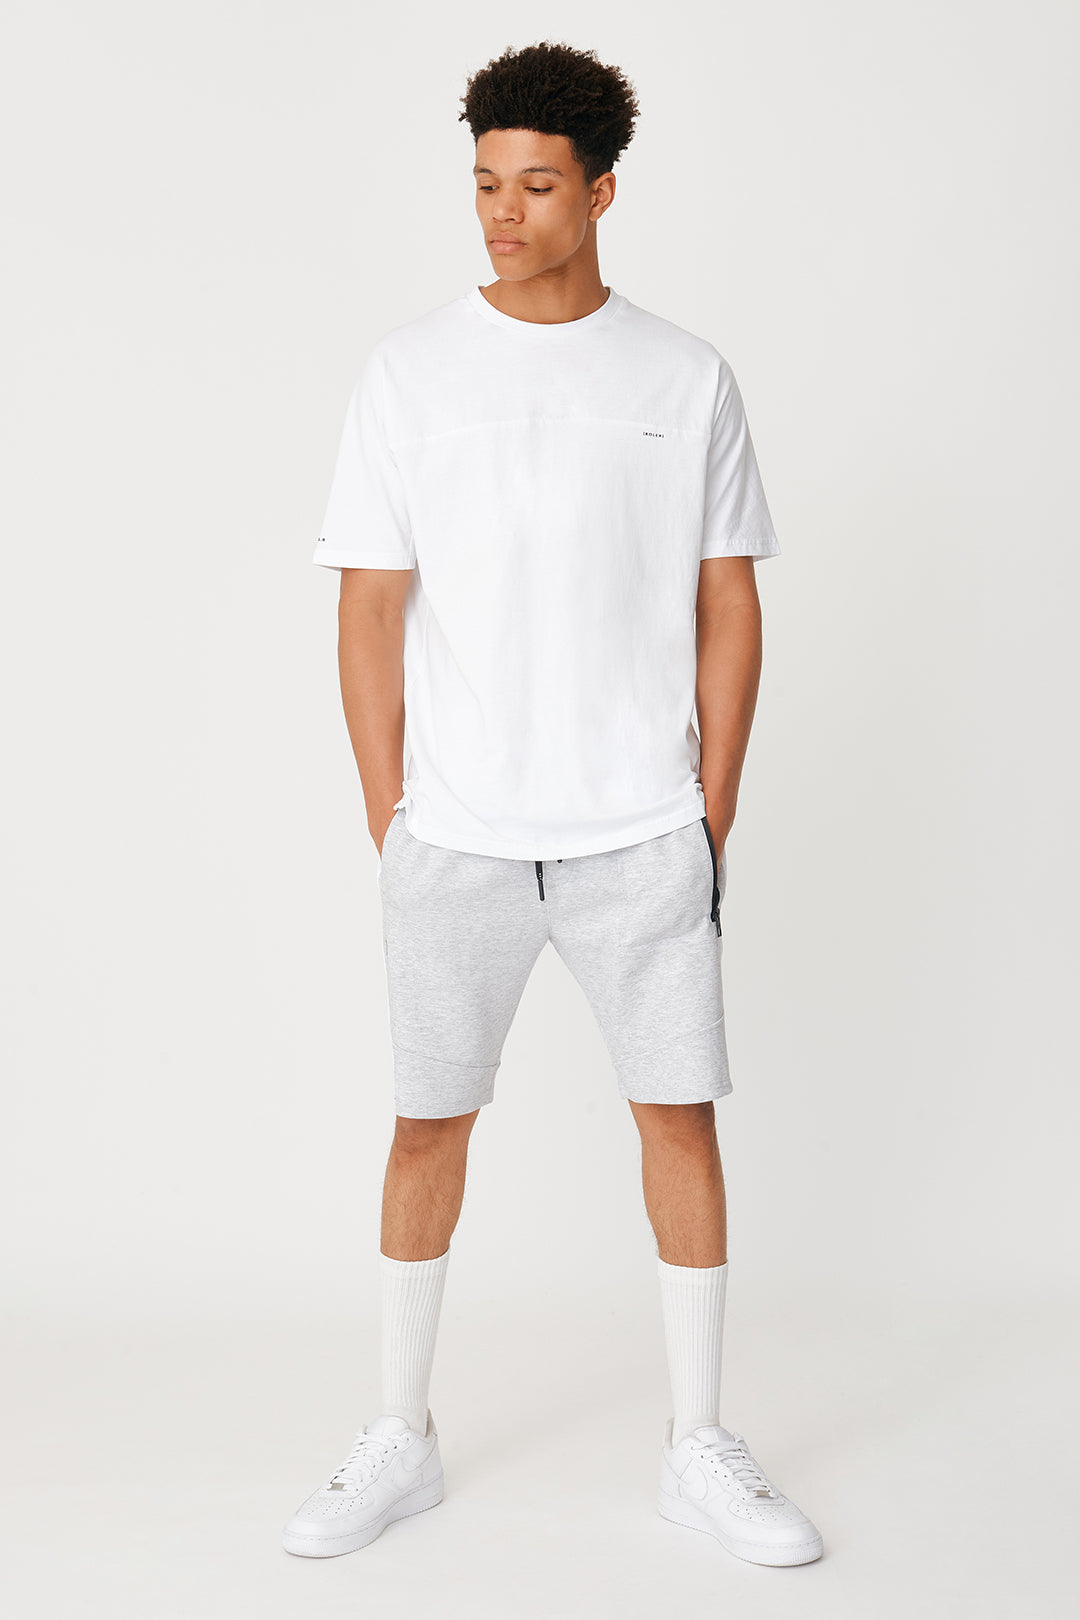 The Kewen Short - Light Grey Marle - Roler Clothing